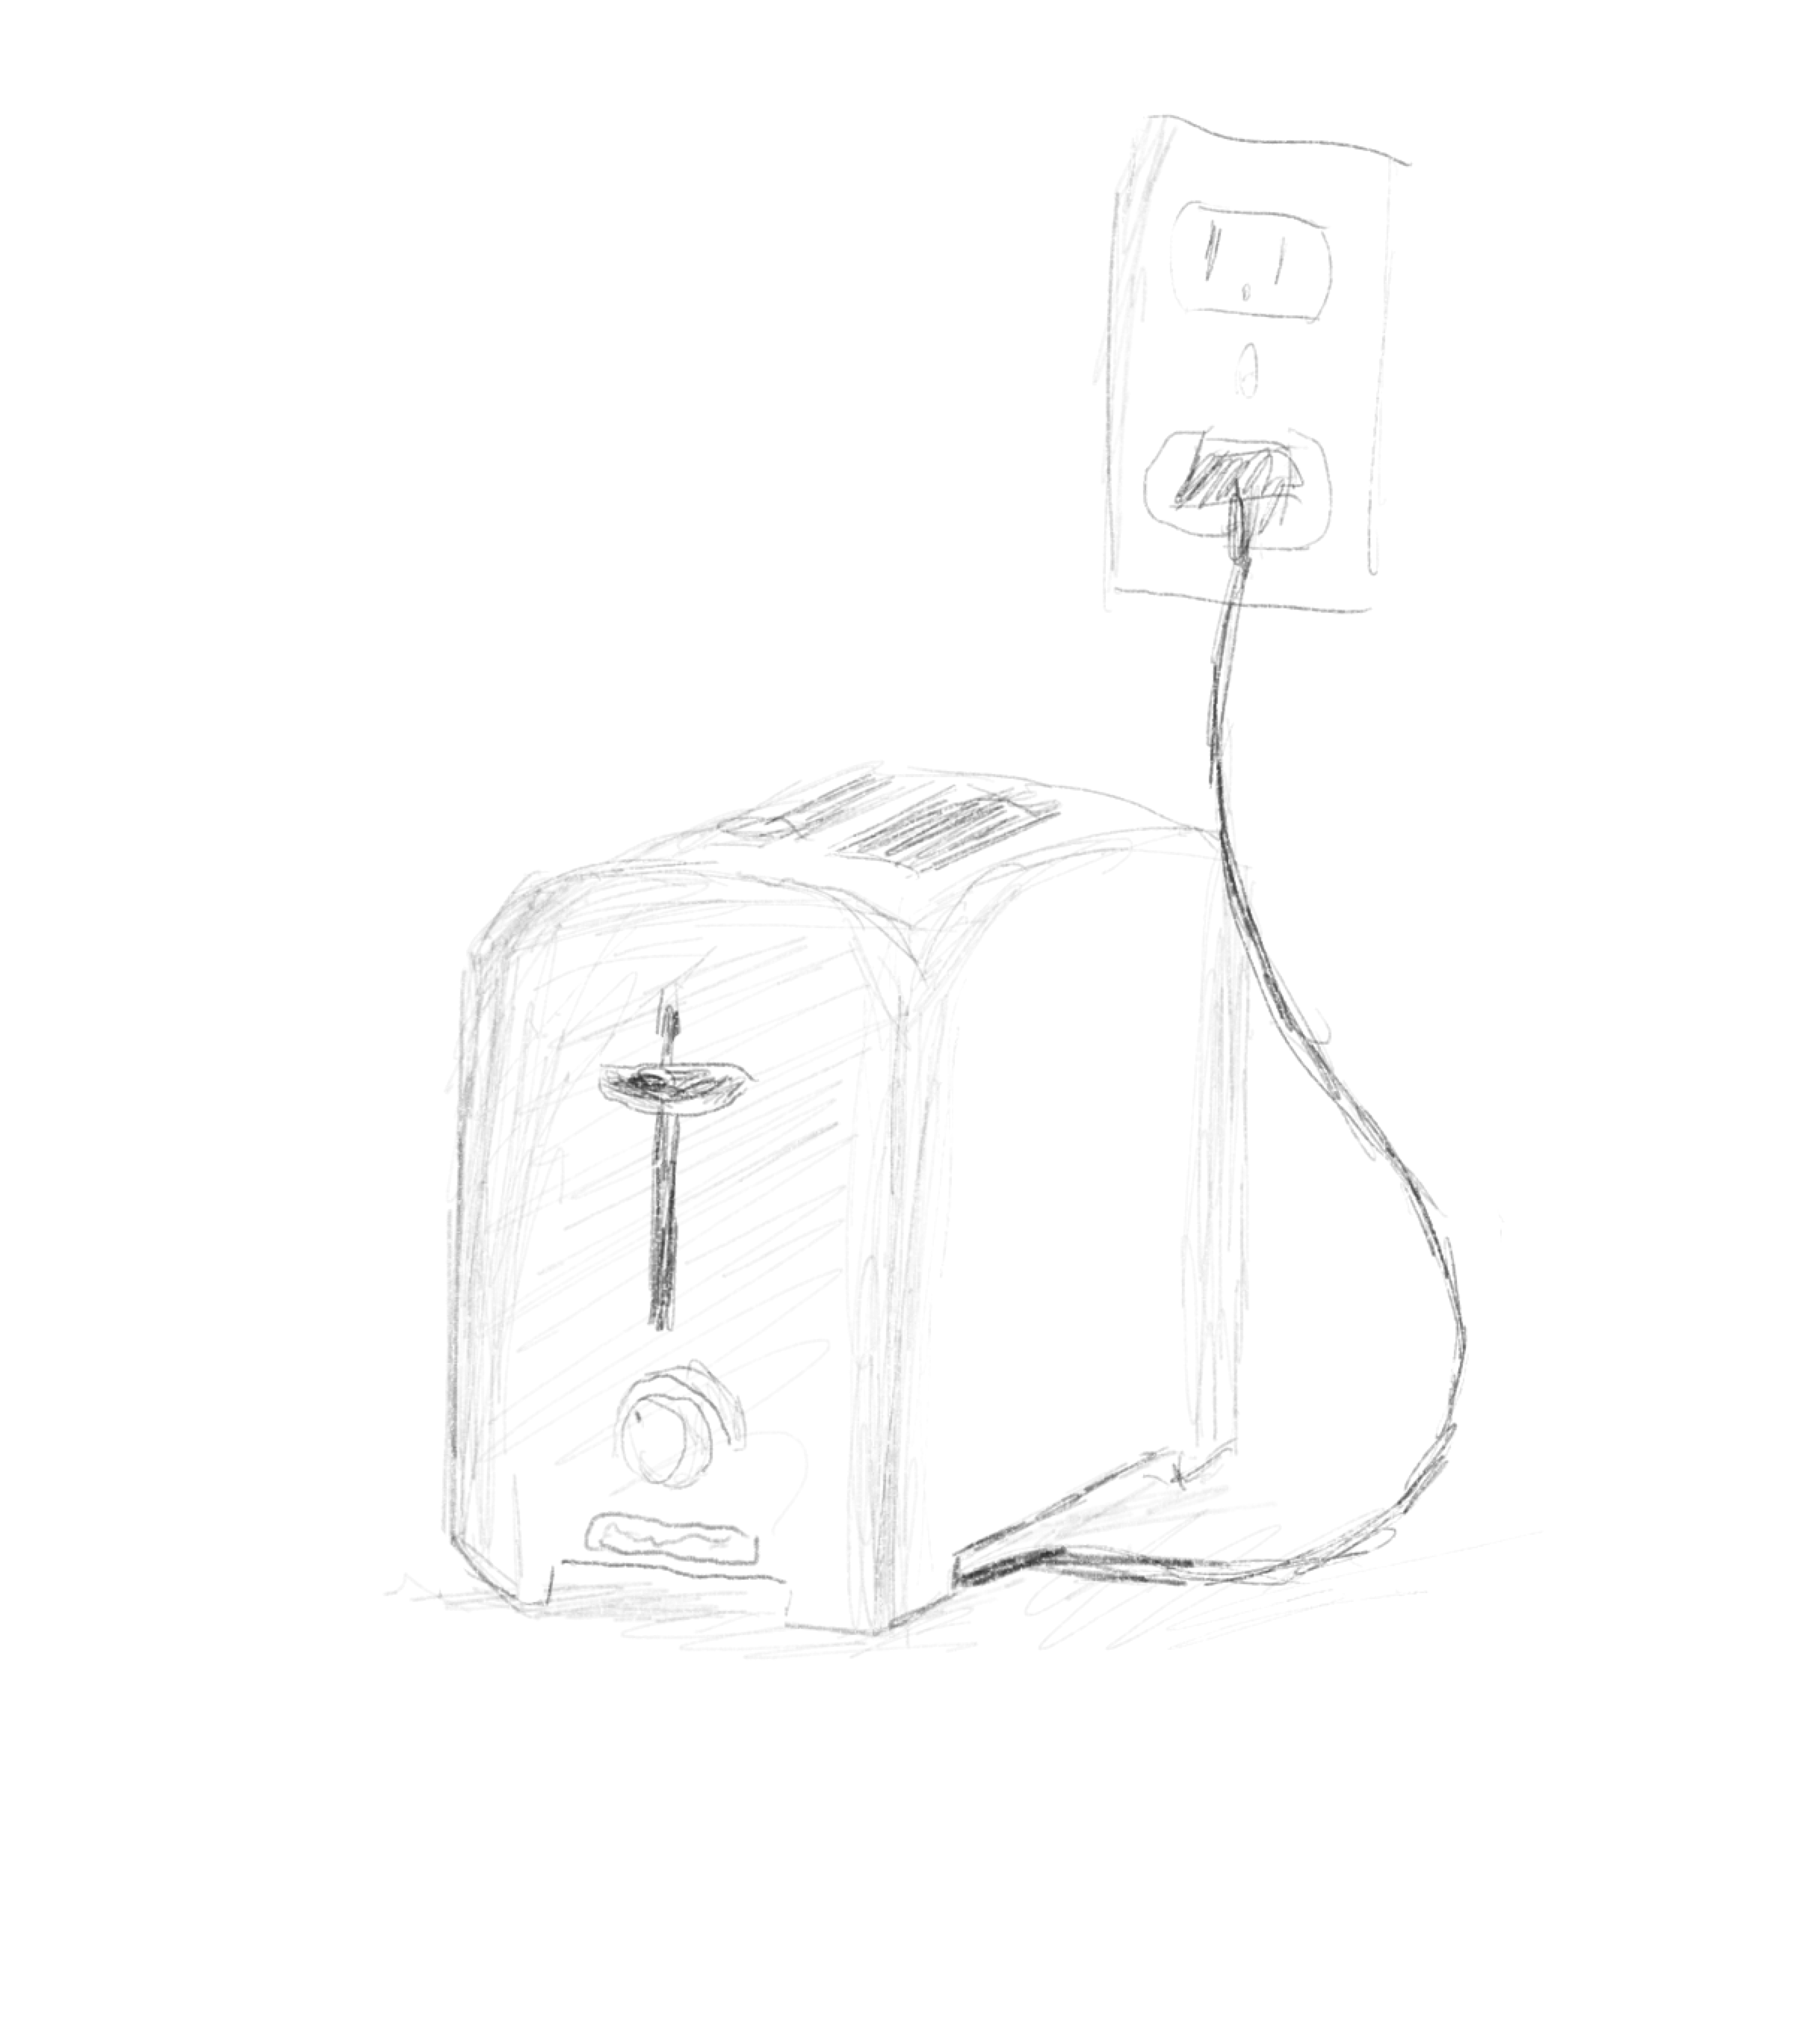 Sketch of a toaster, plugged in to the wall.